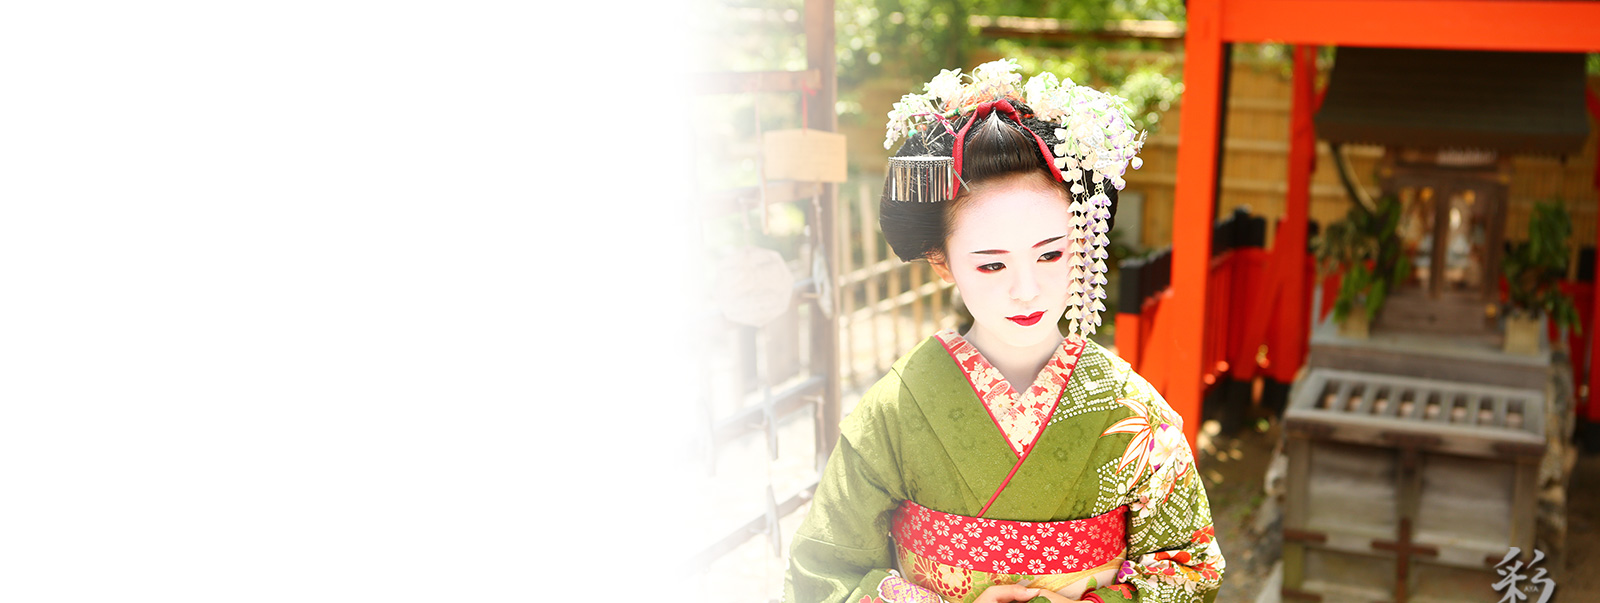 Maiko and Geisha makeover plan at studio